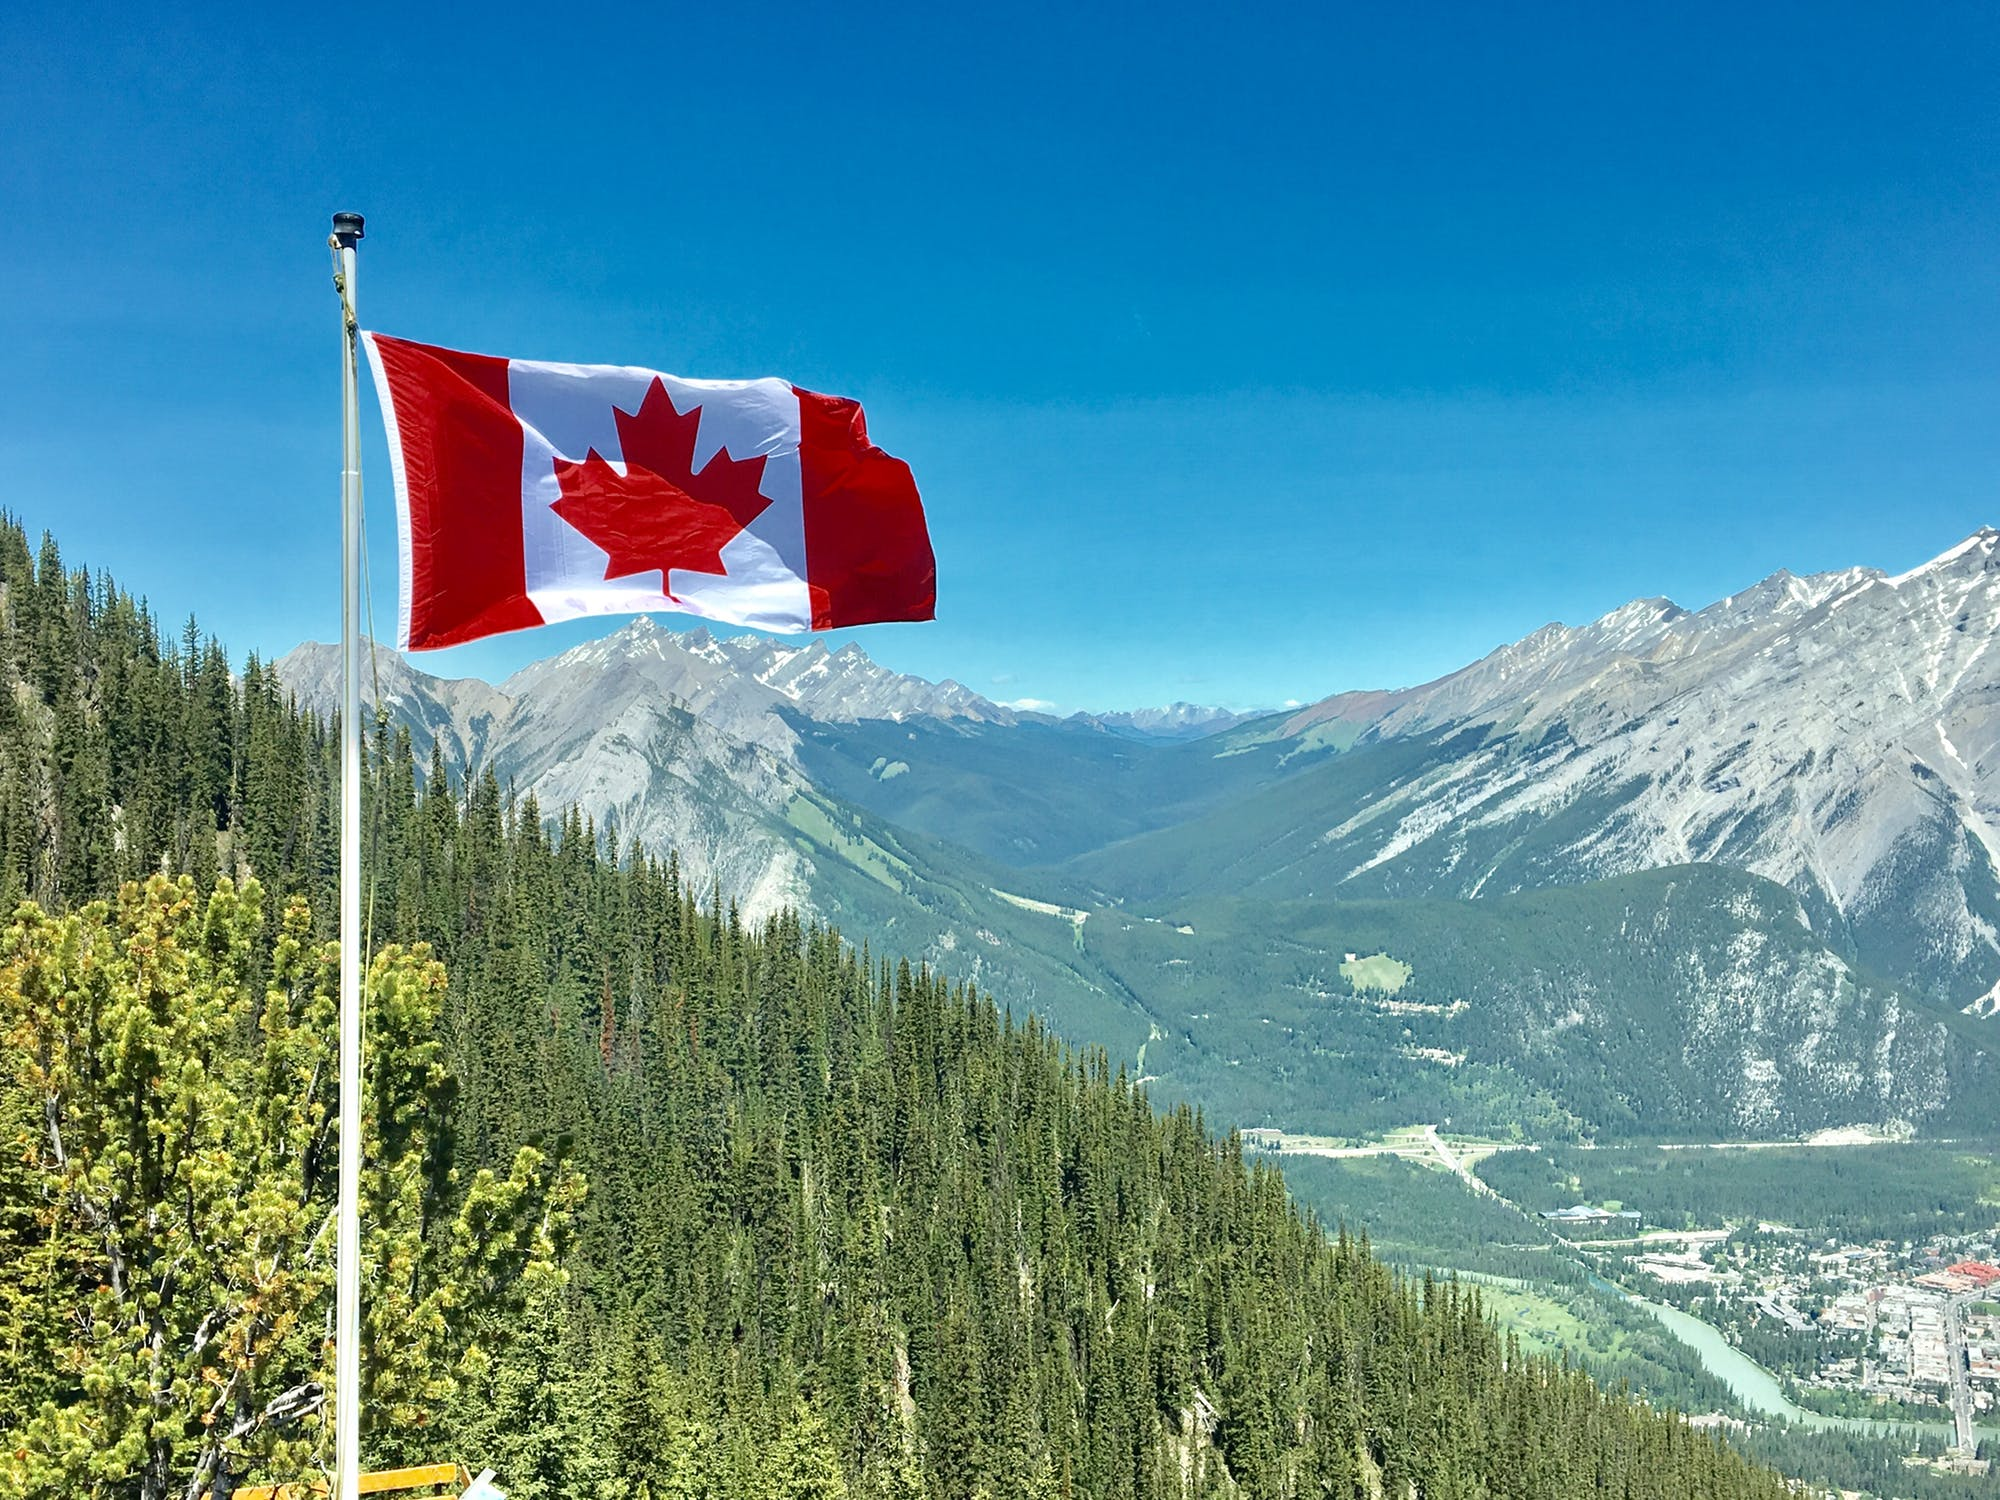 CP NewsAlert: Federal climate plan includes carbon tax increases through 2030